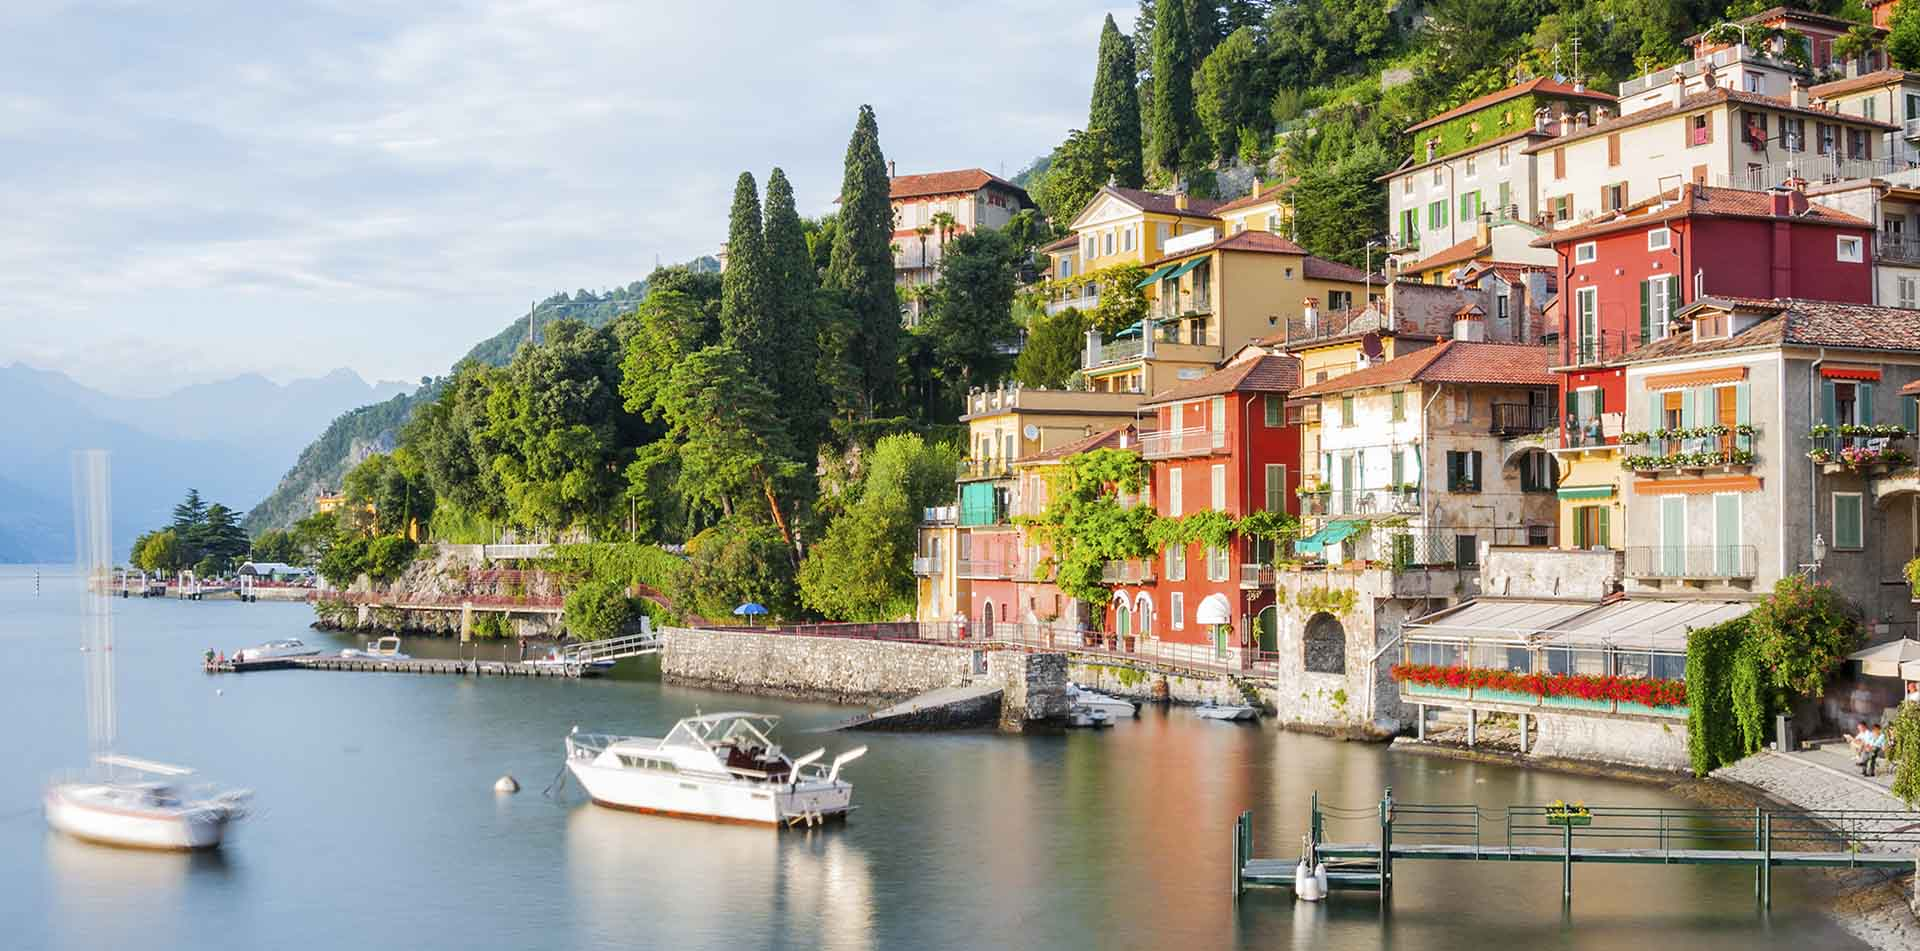 Europe Italy Lake Como Menaggio scenic town historic colorful houses on green hill boat dock - luxury vacation destinations